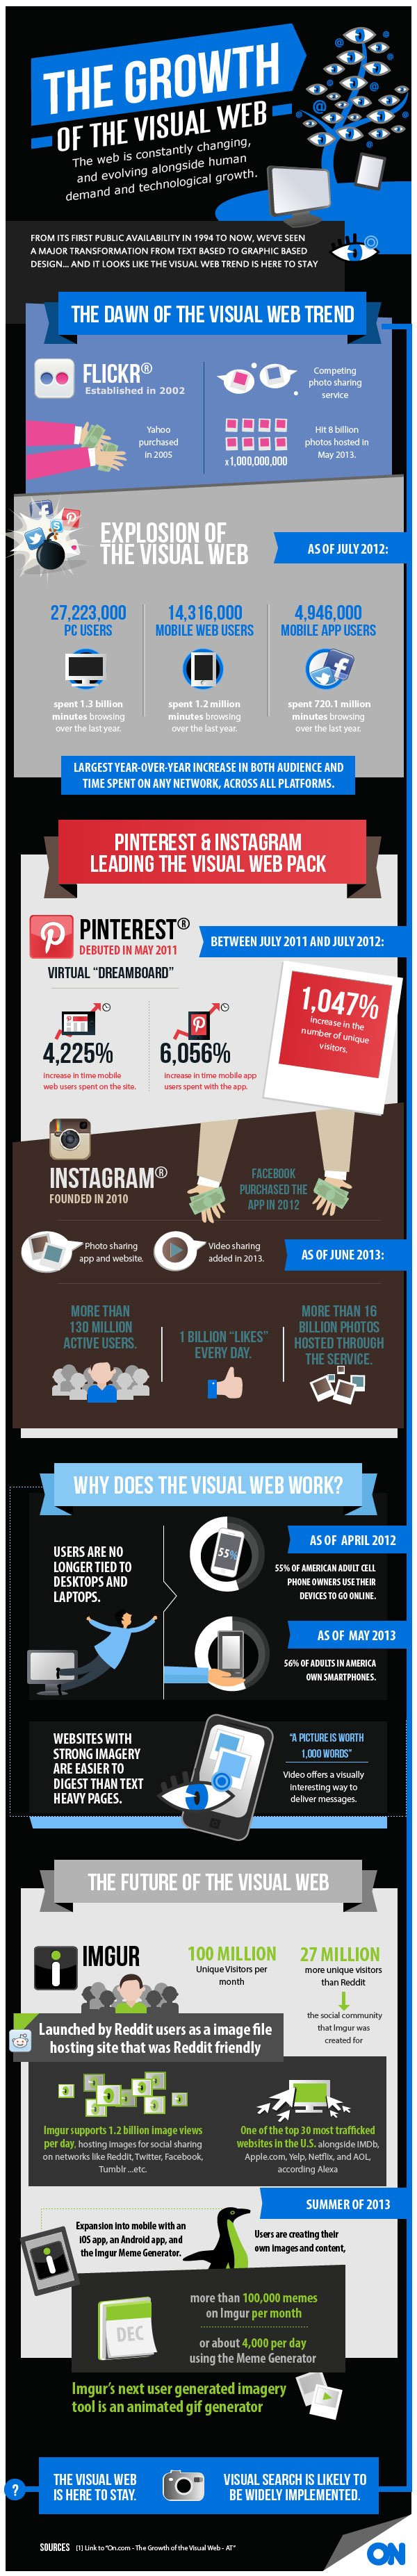 The-Growth-Of-The-Visual-Web Infographic